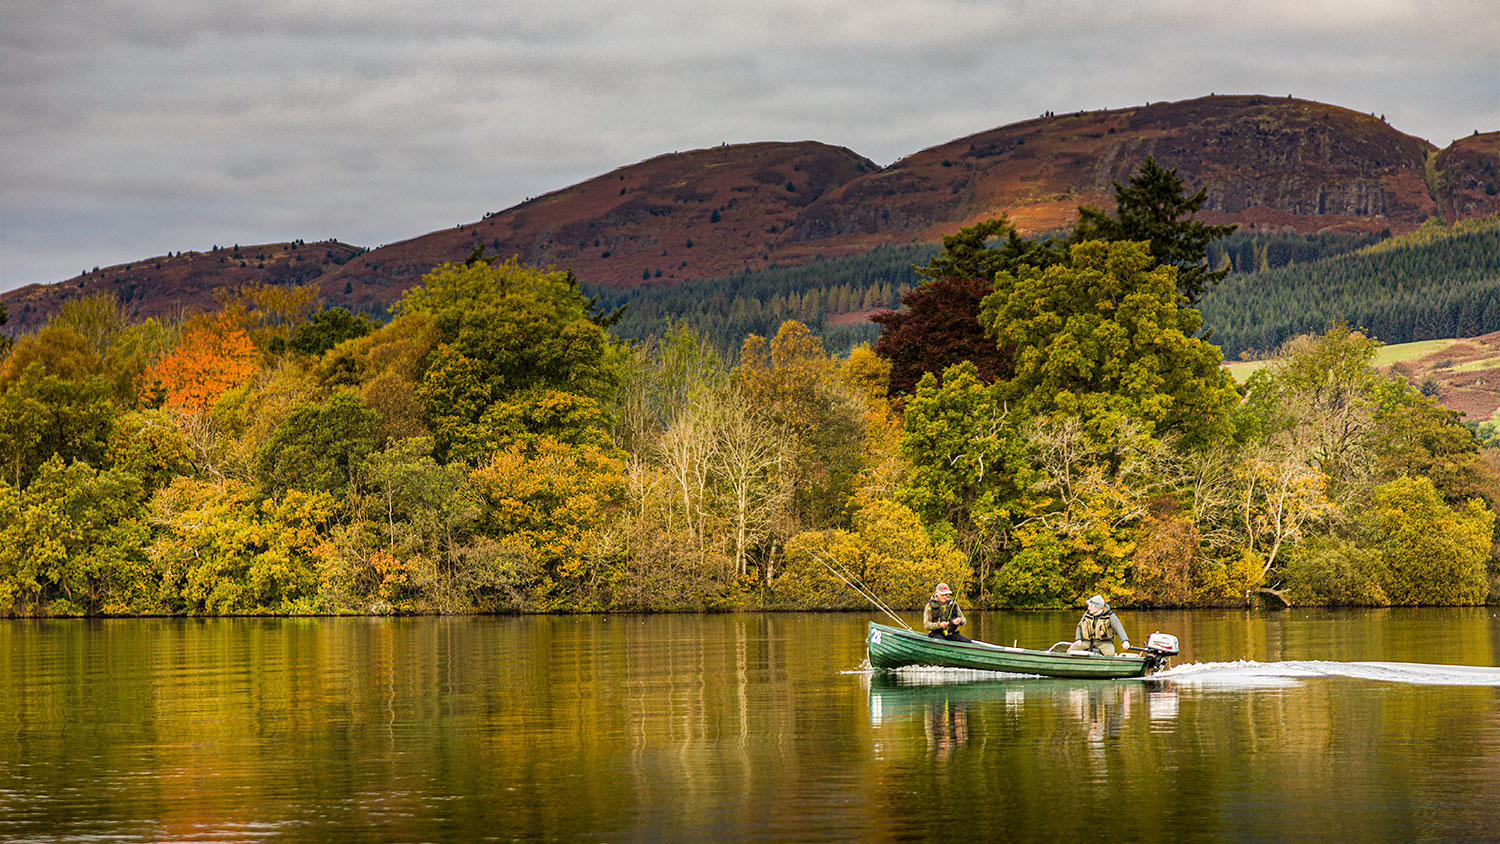 Menteith16Oct20_4344-HDR.jpg